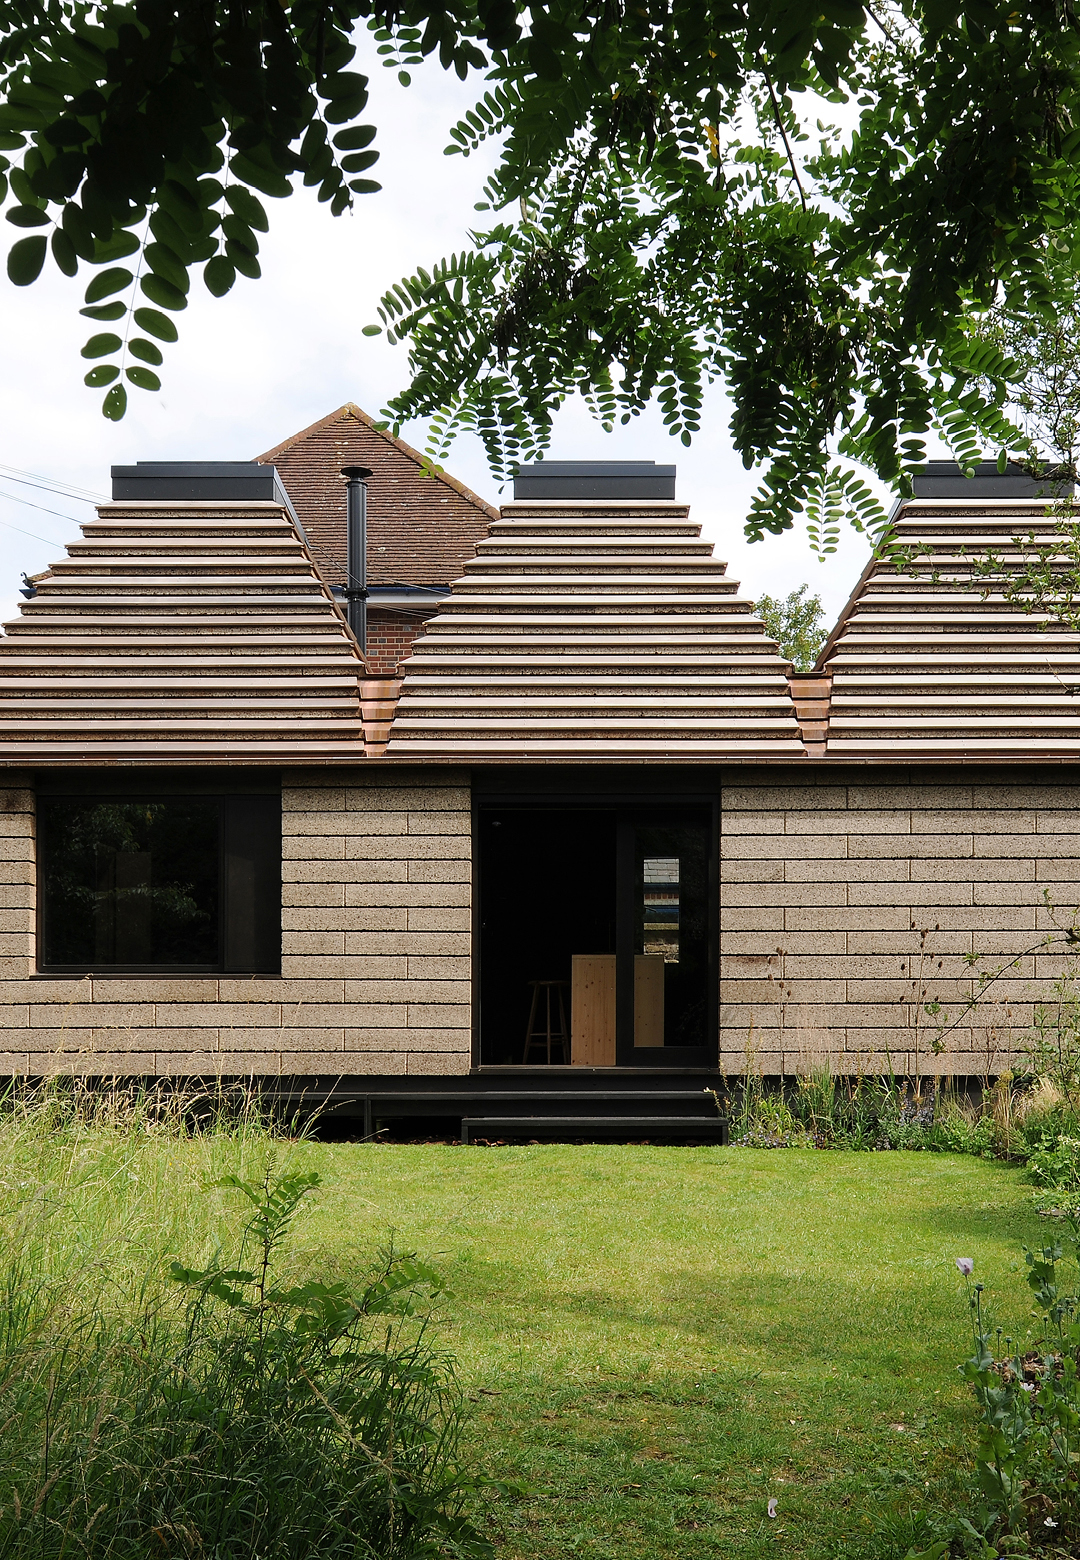 The Cork House in Eton, England, designed by Matthew Barnett Howland with Dido Milne and Oliver Wilton| Matthew Barnett Howland | Dido Milne| Oliver Wilton| The Cork House| RIBA Stirling Prize 2019| STIR